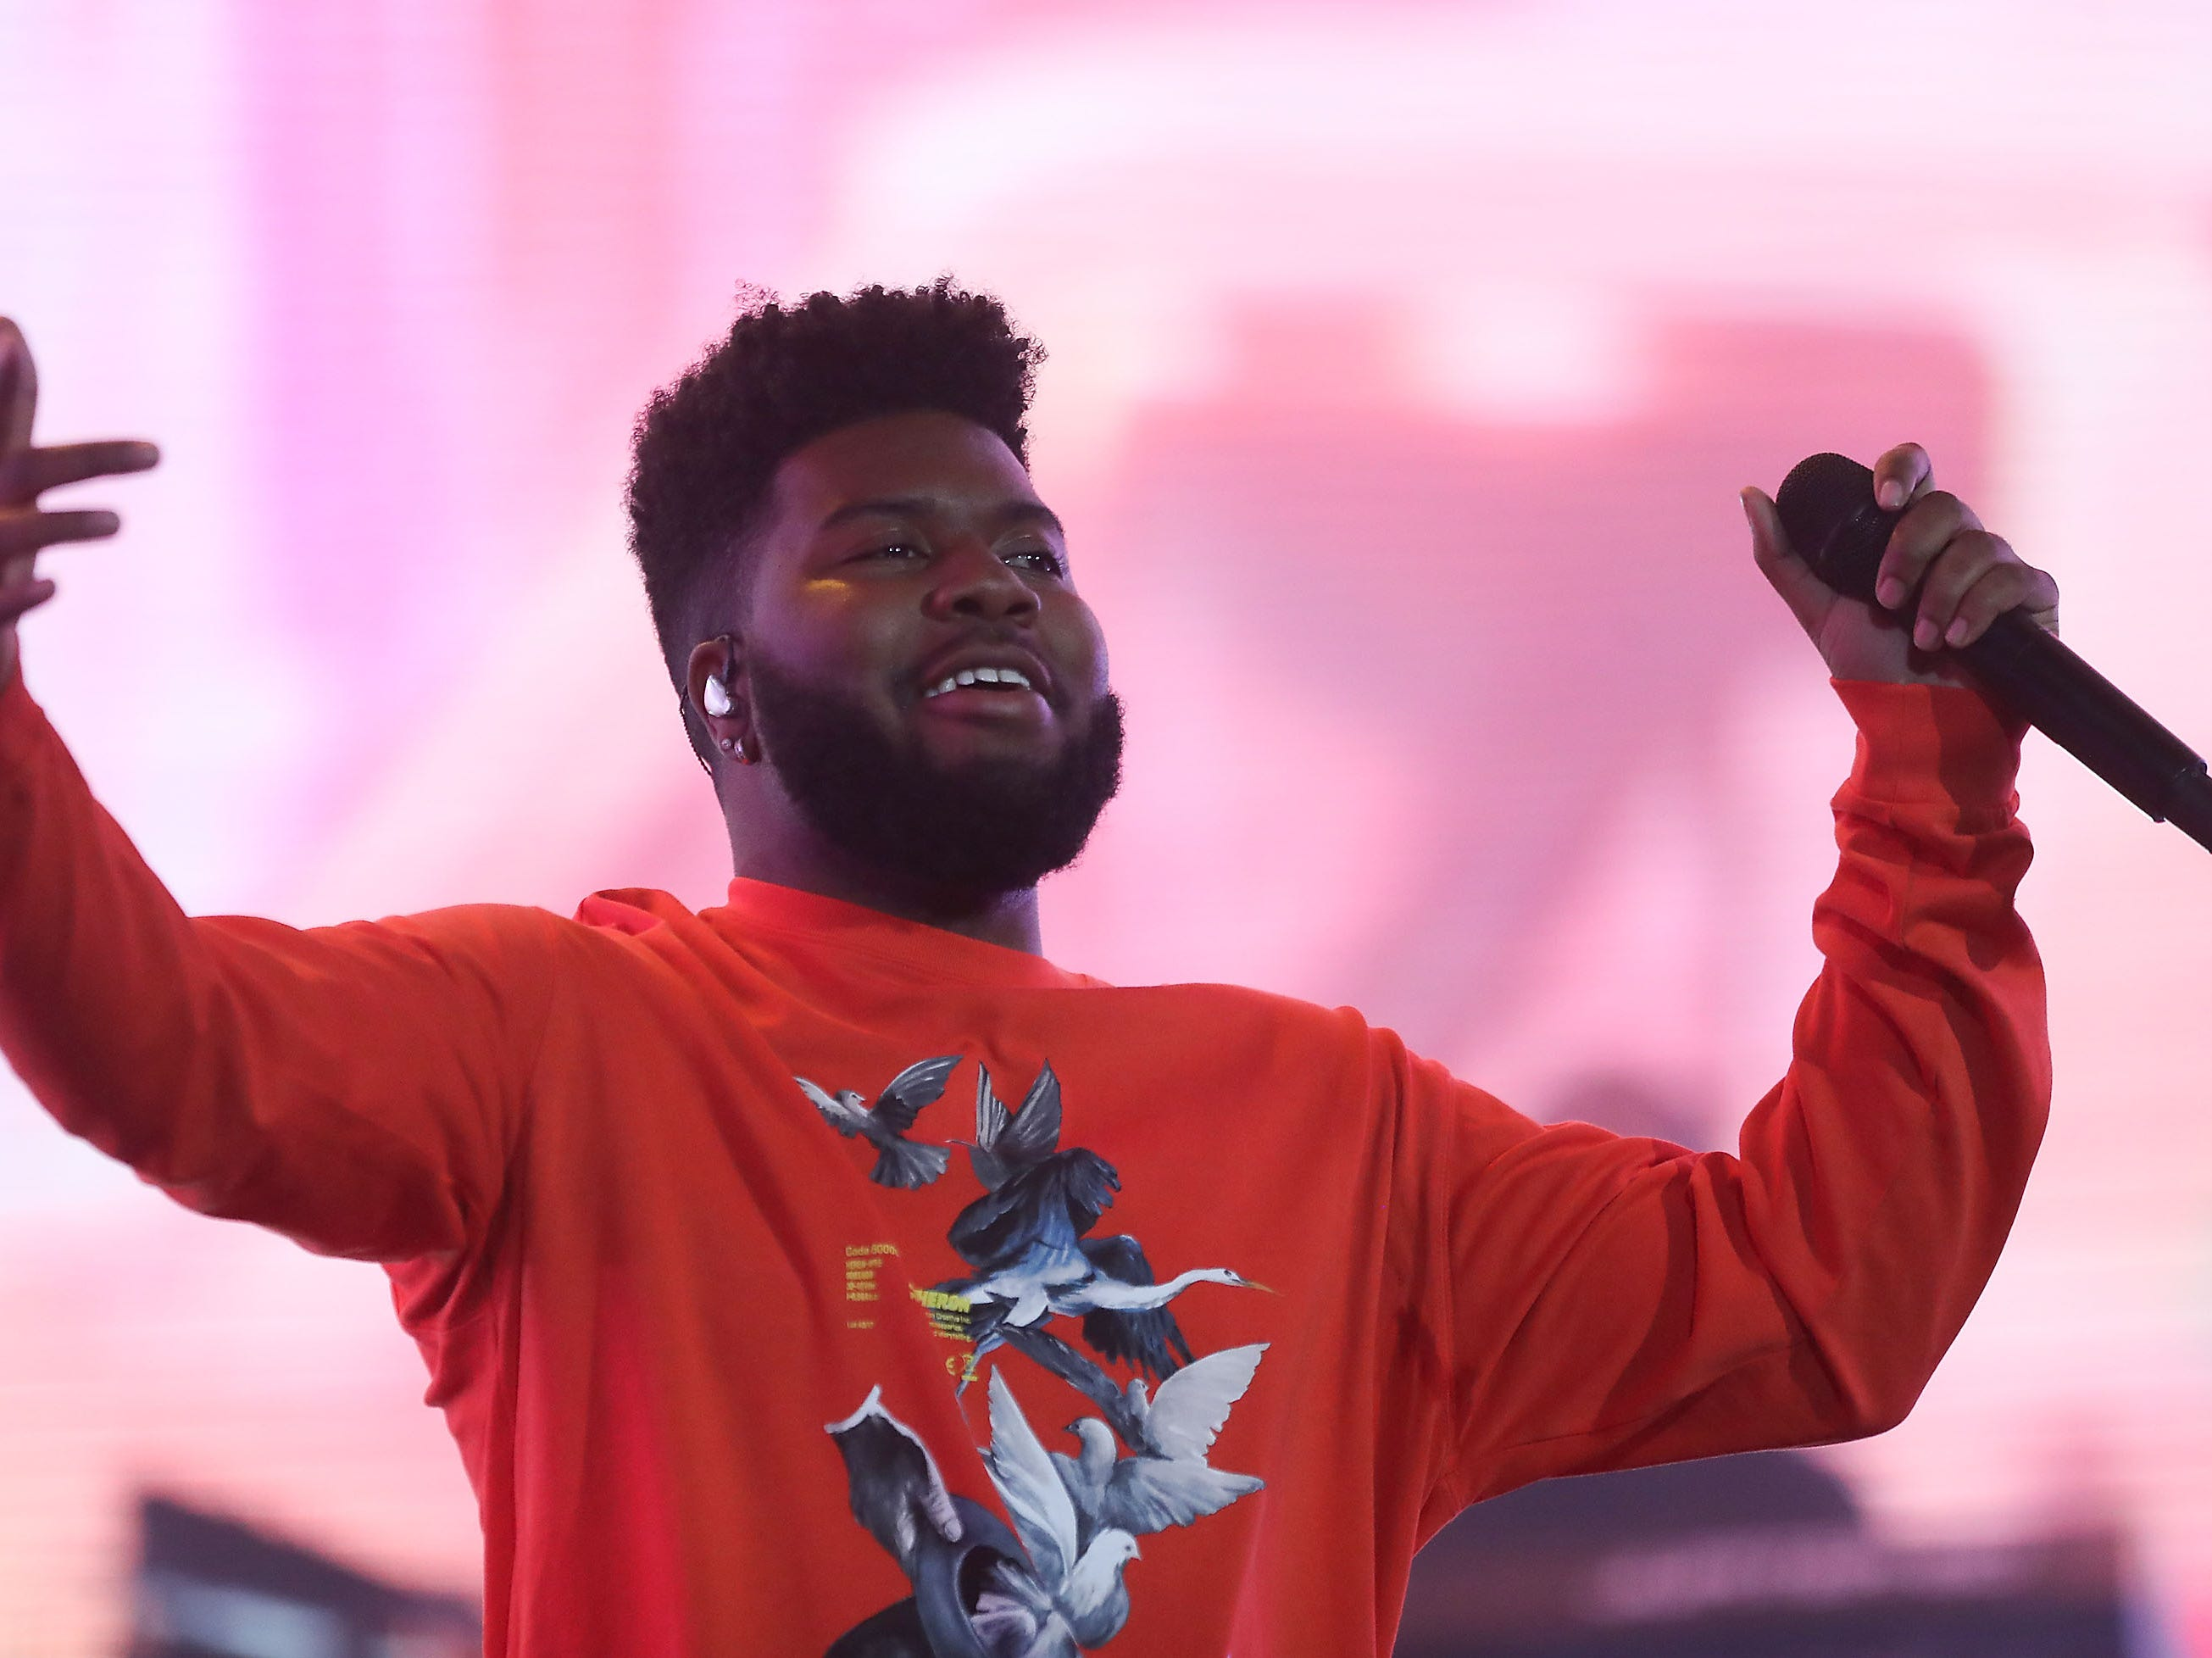 Khalid performs at the Coachella Valley Music and Arts Festival in Indio, April 21, 2019.